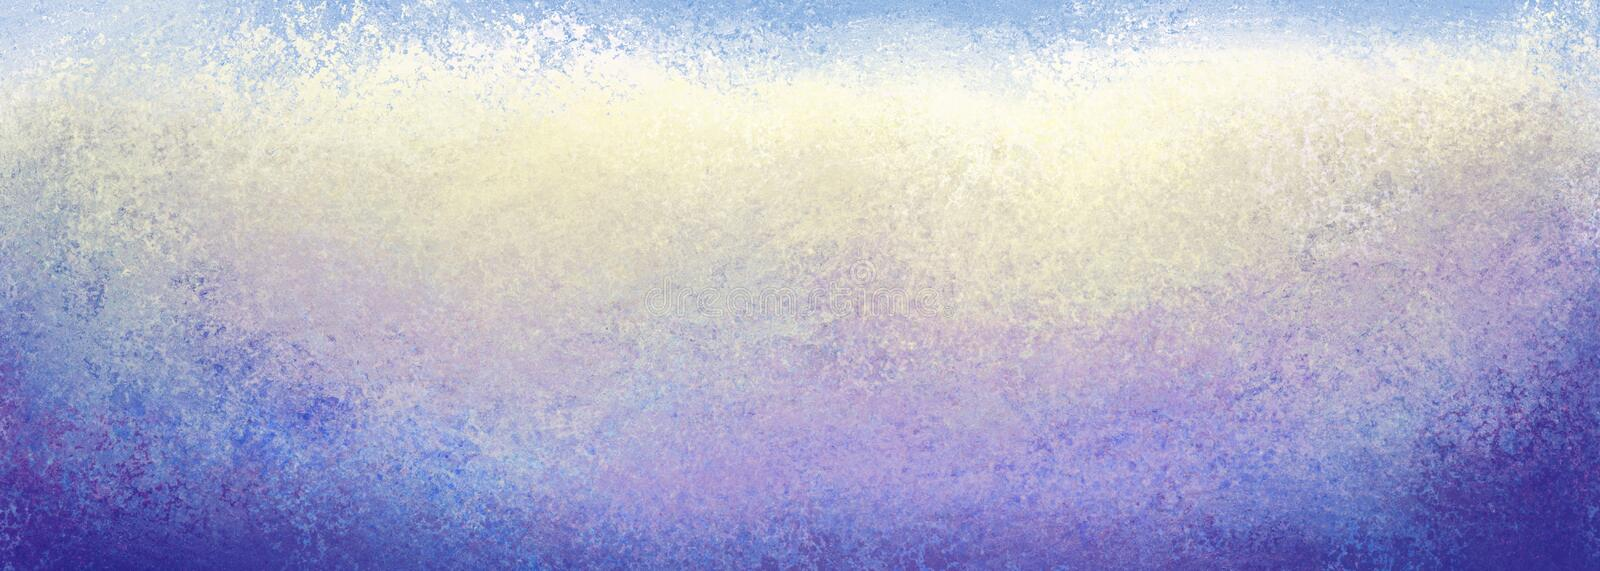 Grunge blue yellow white purple and blue background with lots of texture, dark borders and light center stock photos